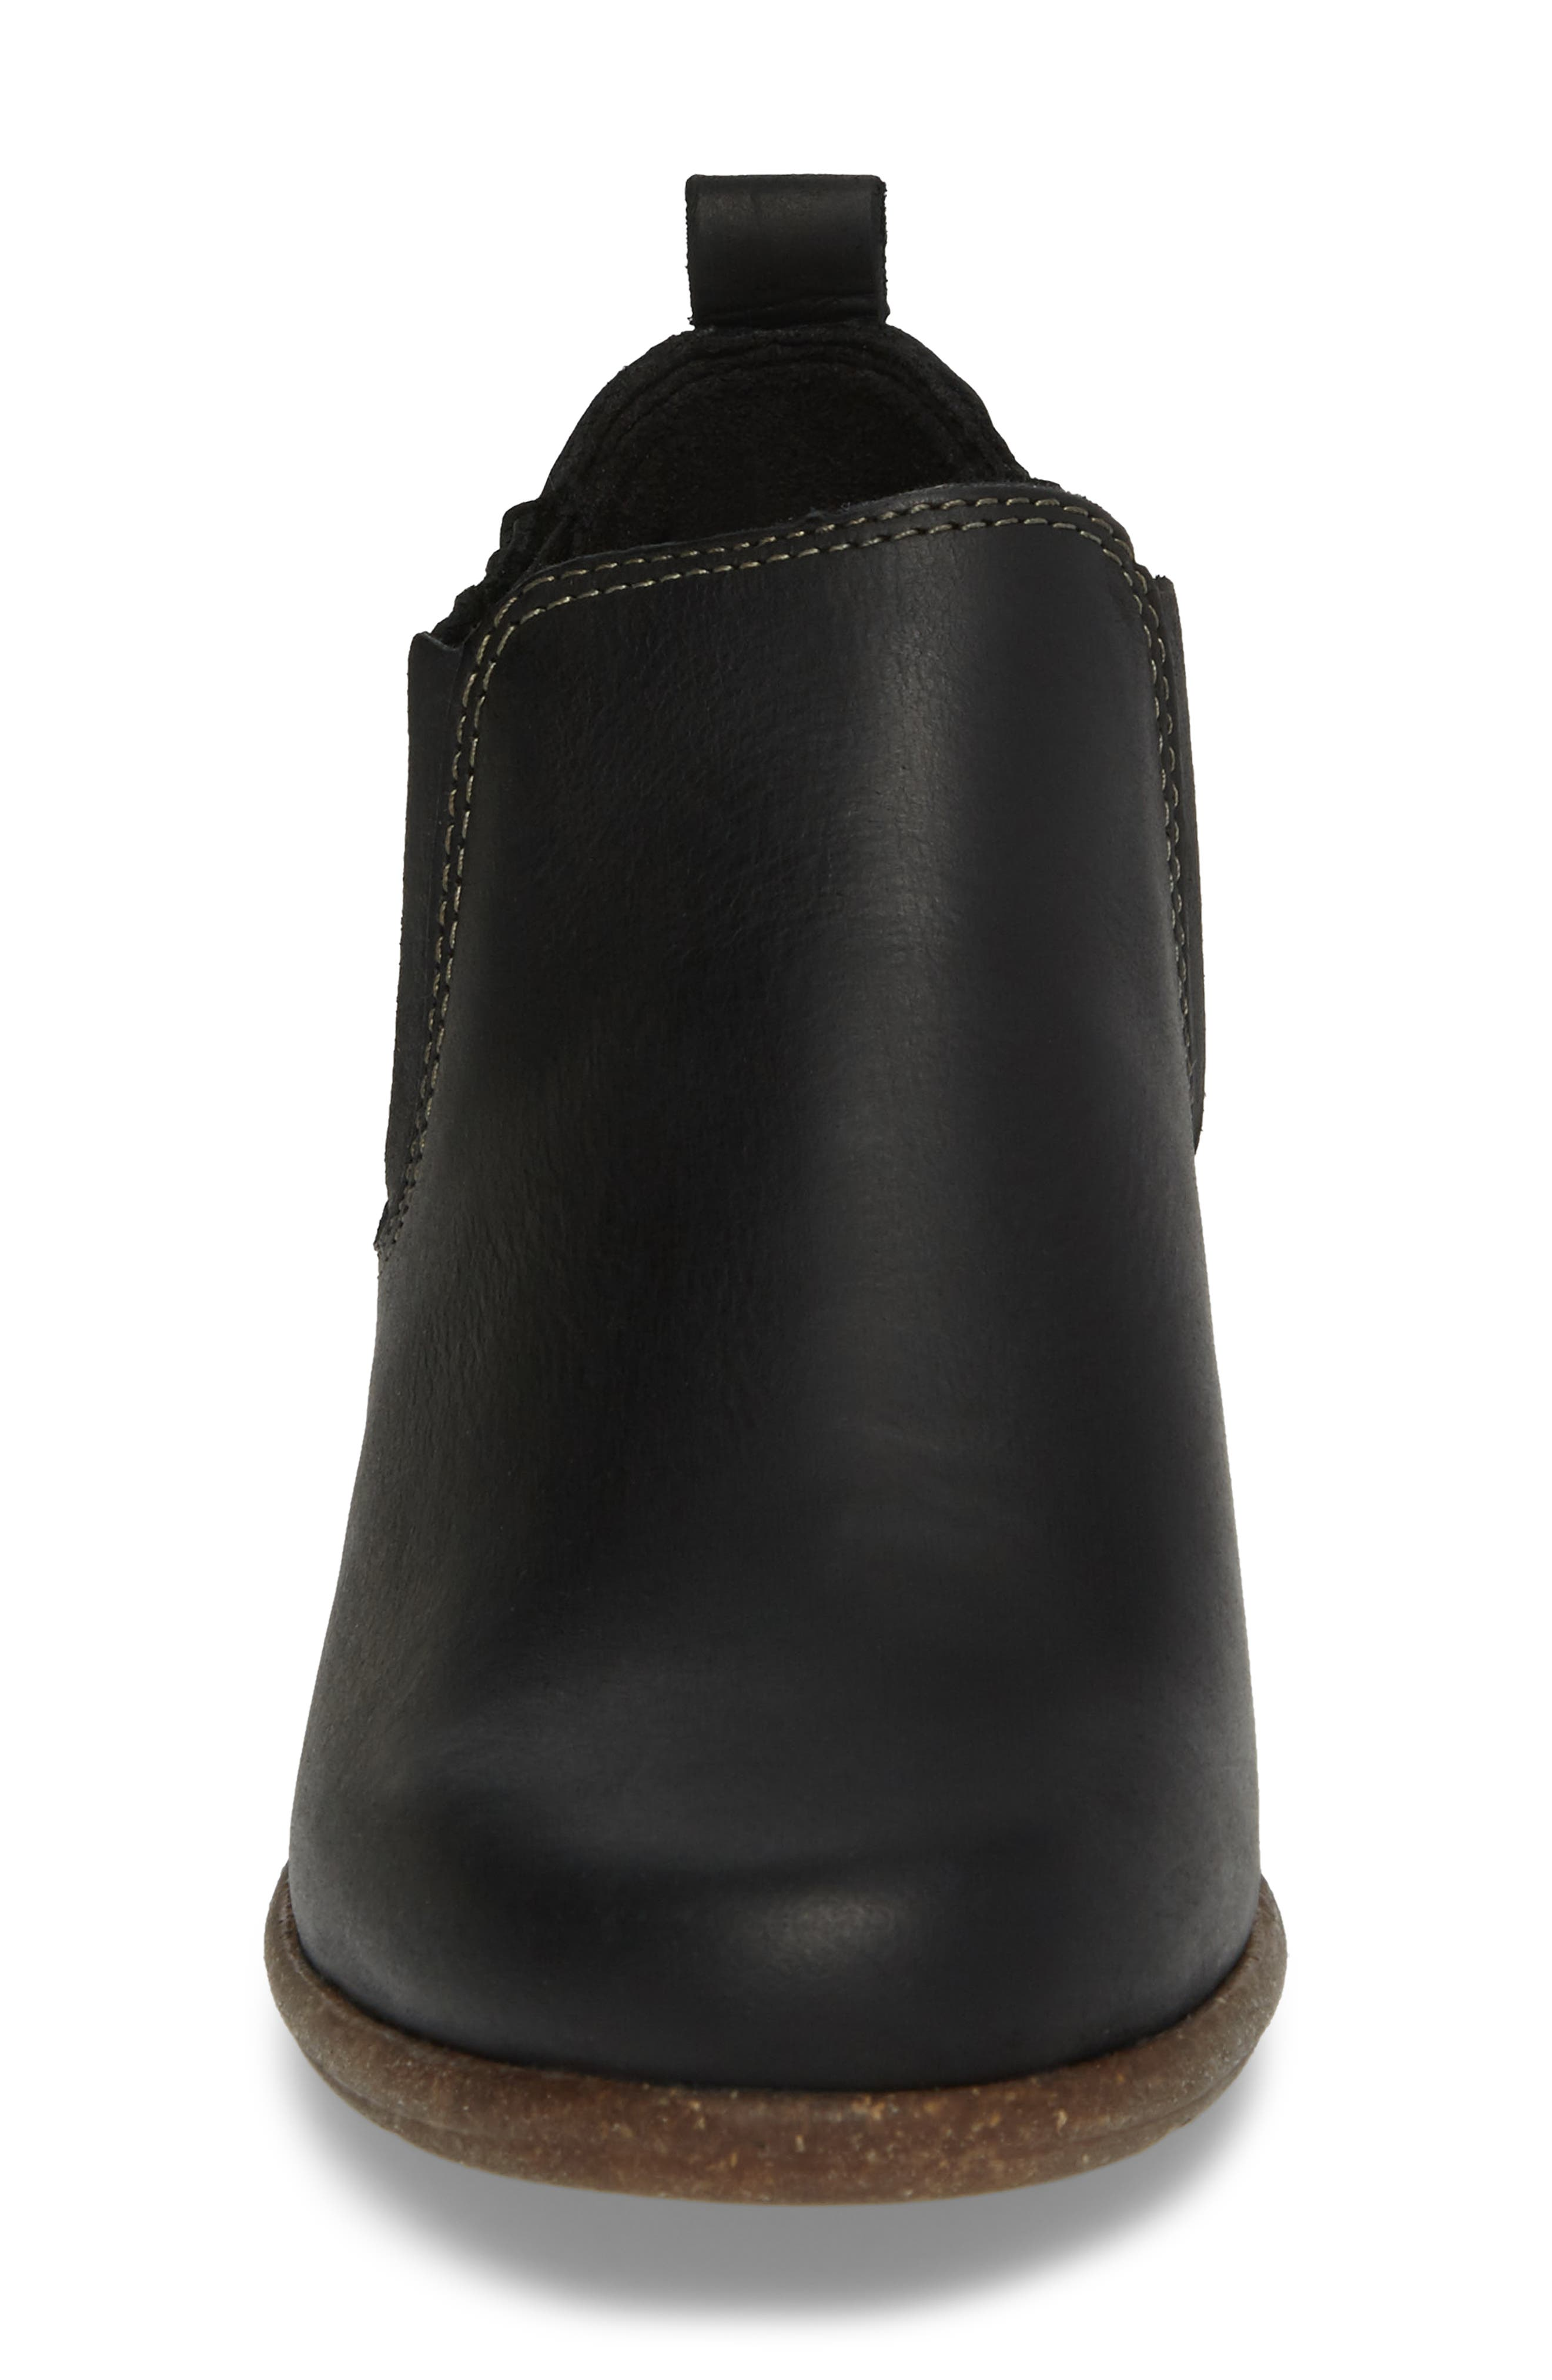 CLARKS<SUP>®</SUP>, Wilrose Jade Low Chelsea Bootie, Alternate thumbnail 4, color, 001